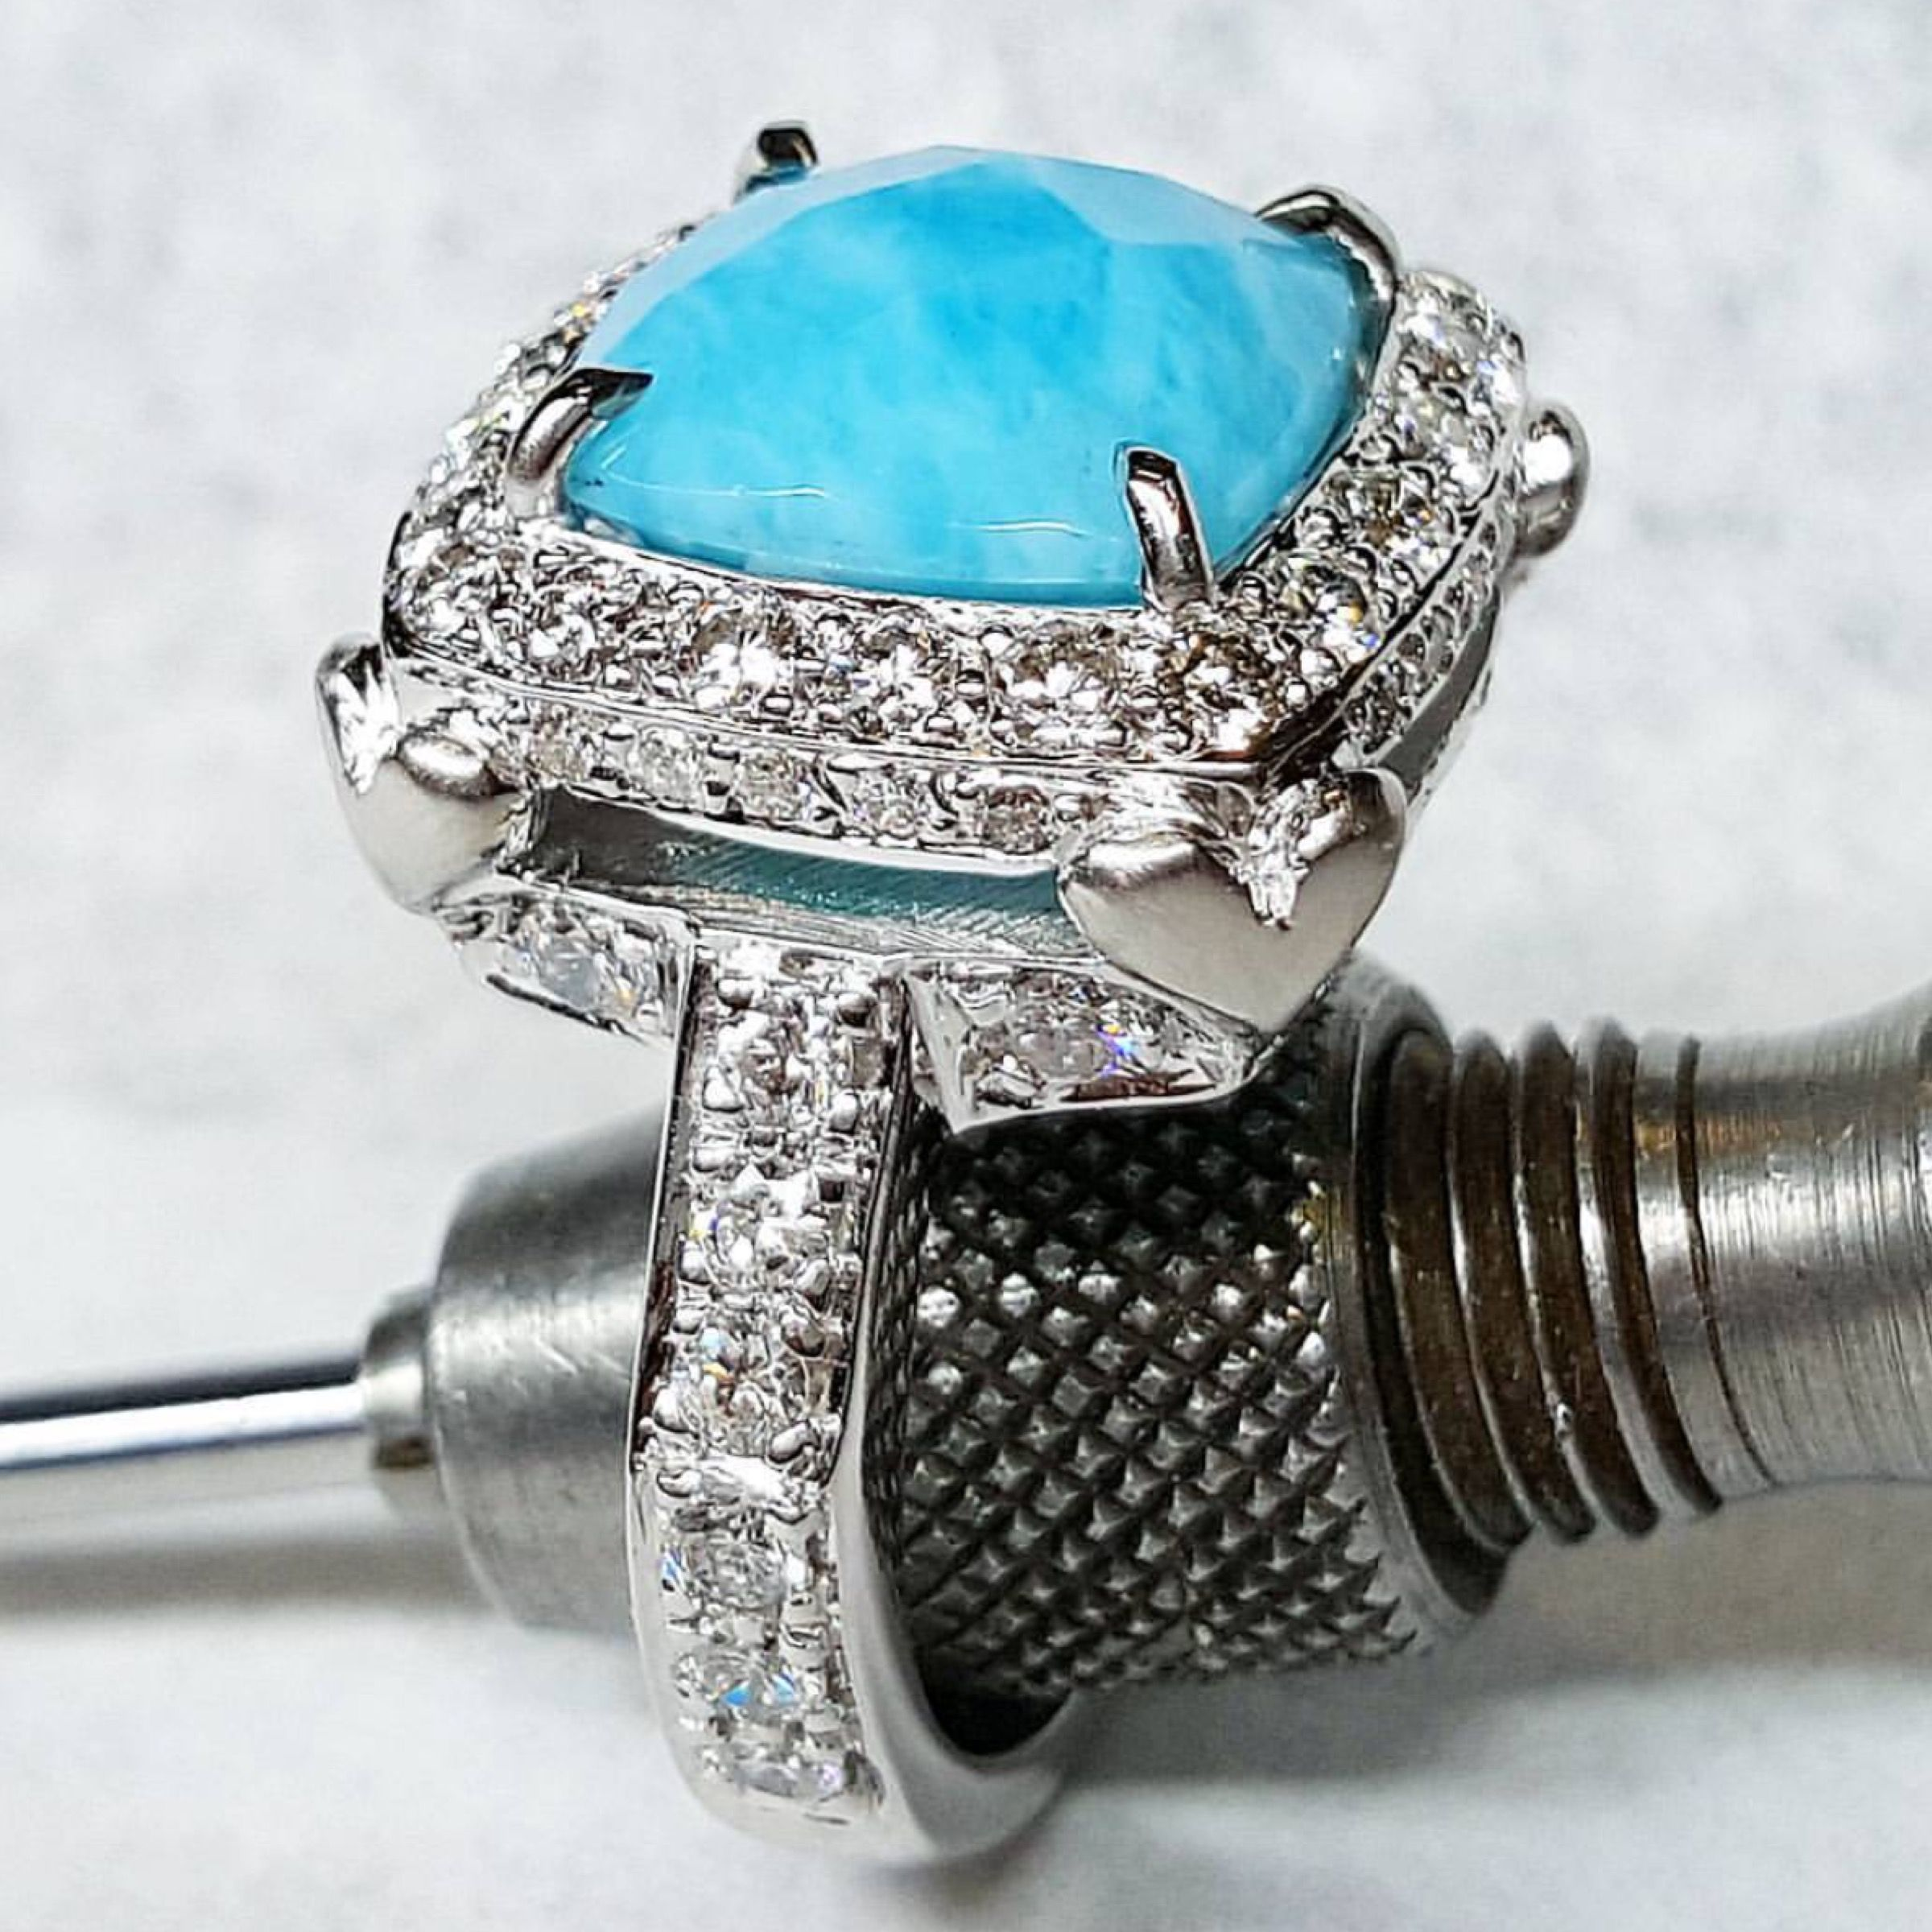 Larimar And Diamonds Engagement Ring In 18kt White Gold Larimar Engagement Ring White Gold Engagement Rings White Gold Rings